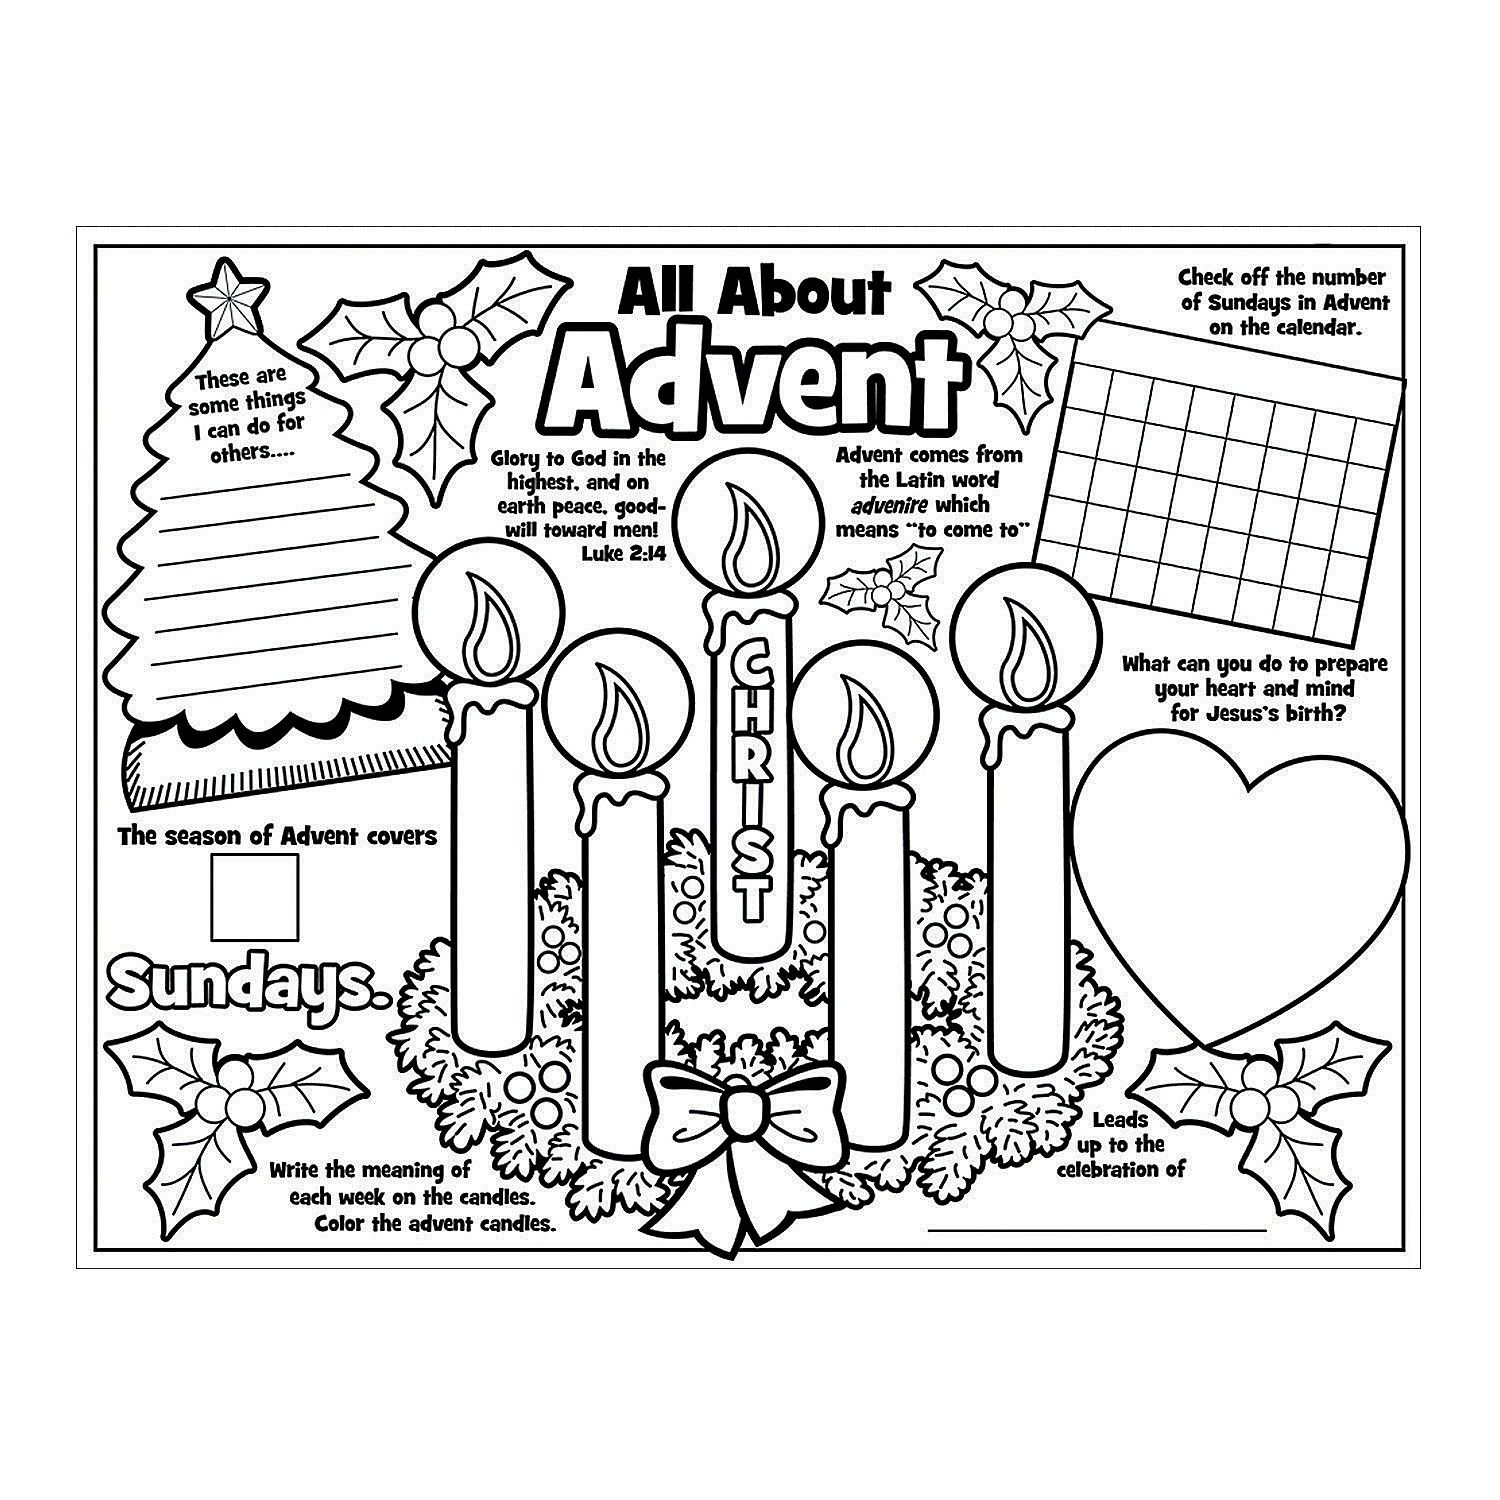 Paper Color Your Own All About The Advent Posters